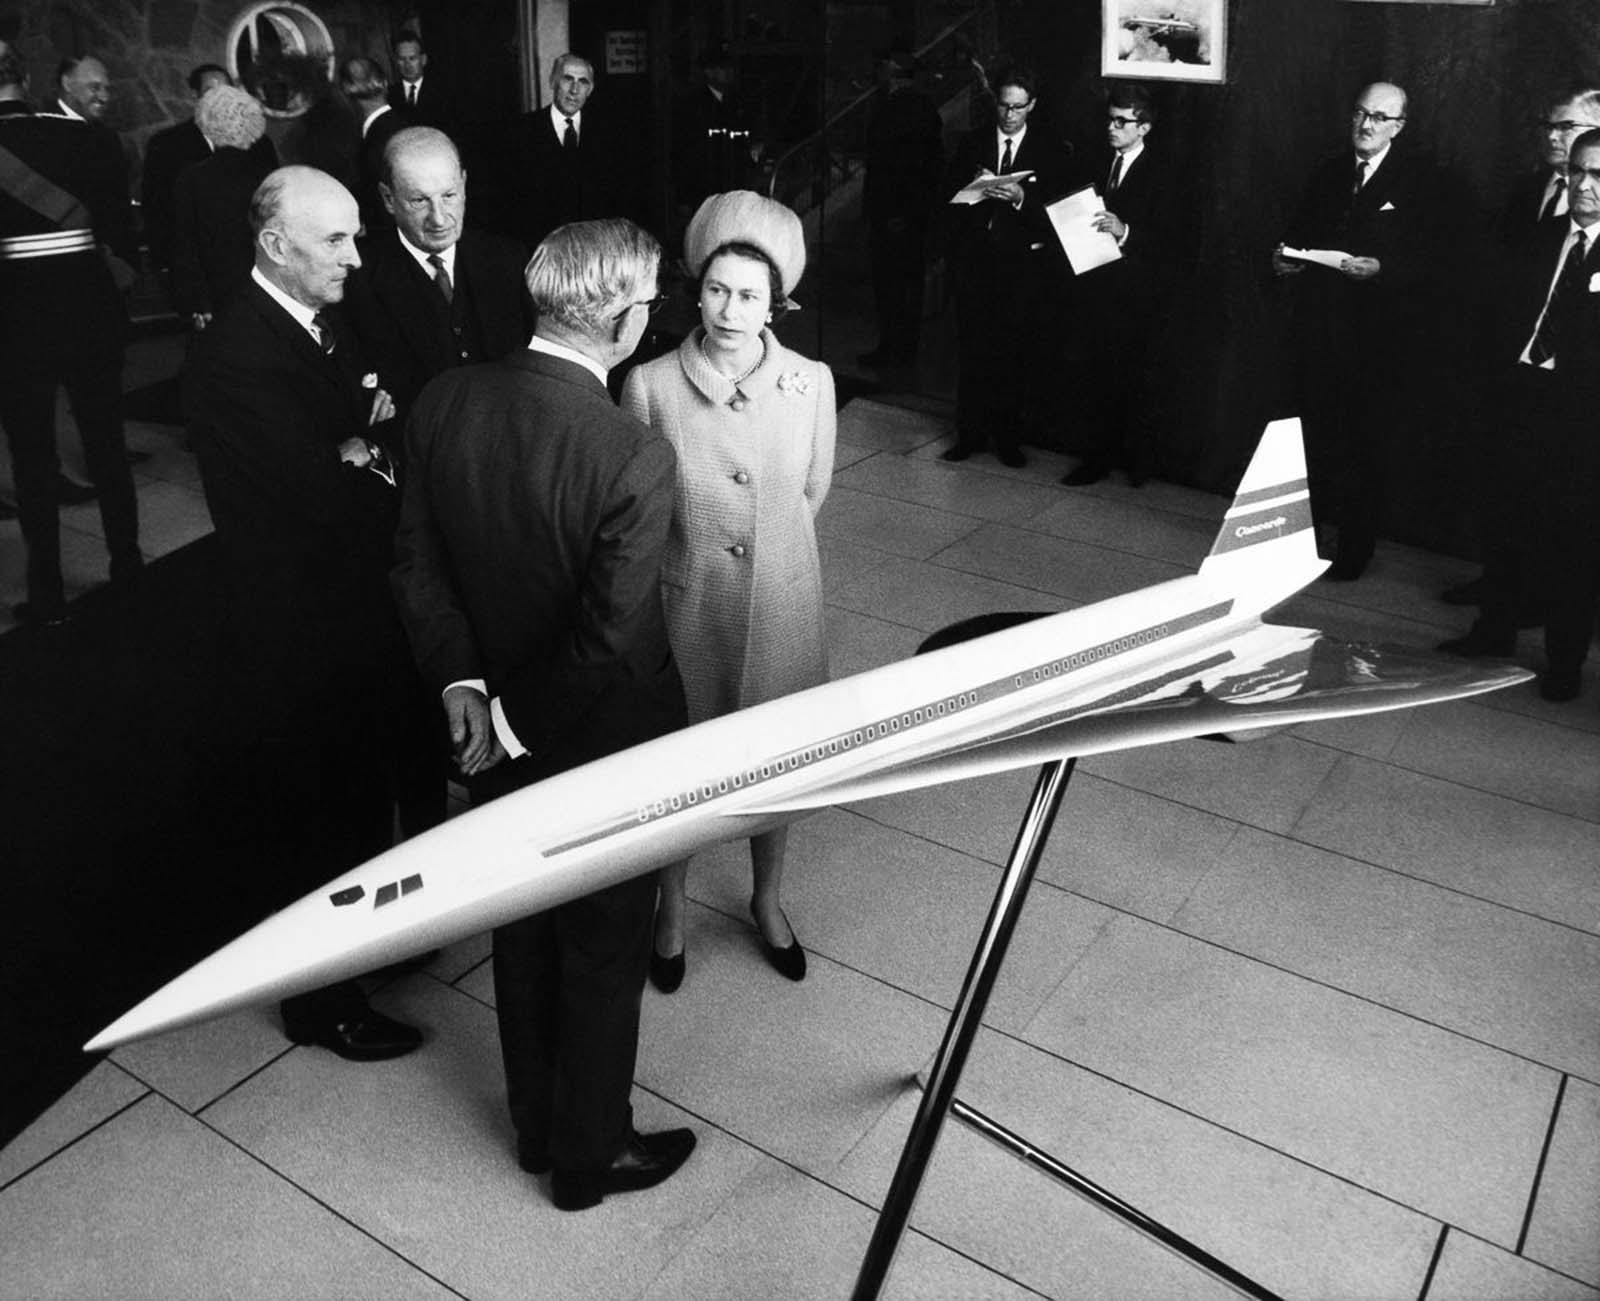 Queen Elizabeth II visits the factory where the Concorde is being developed. 1966.